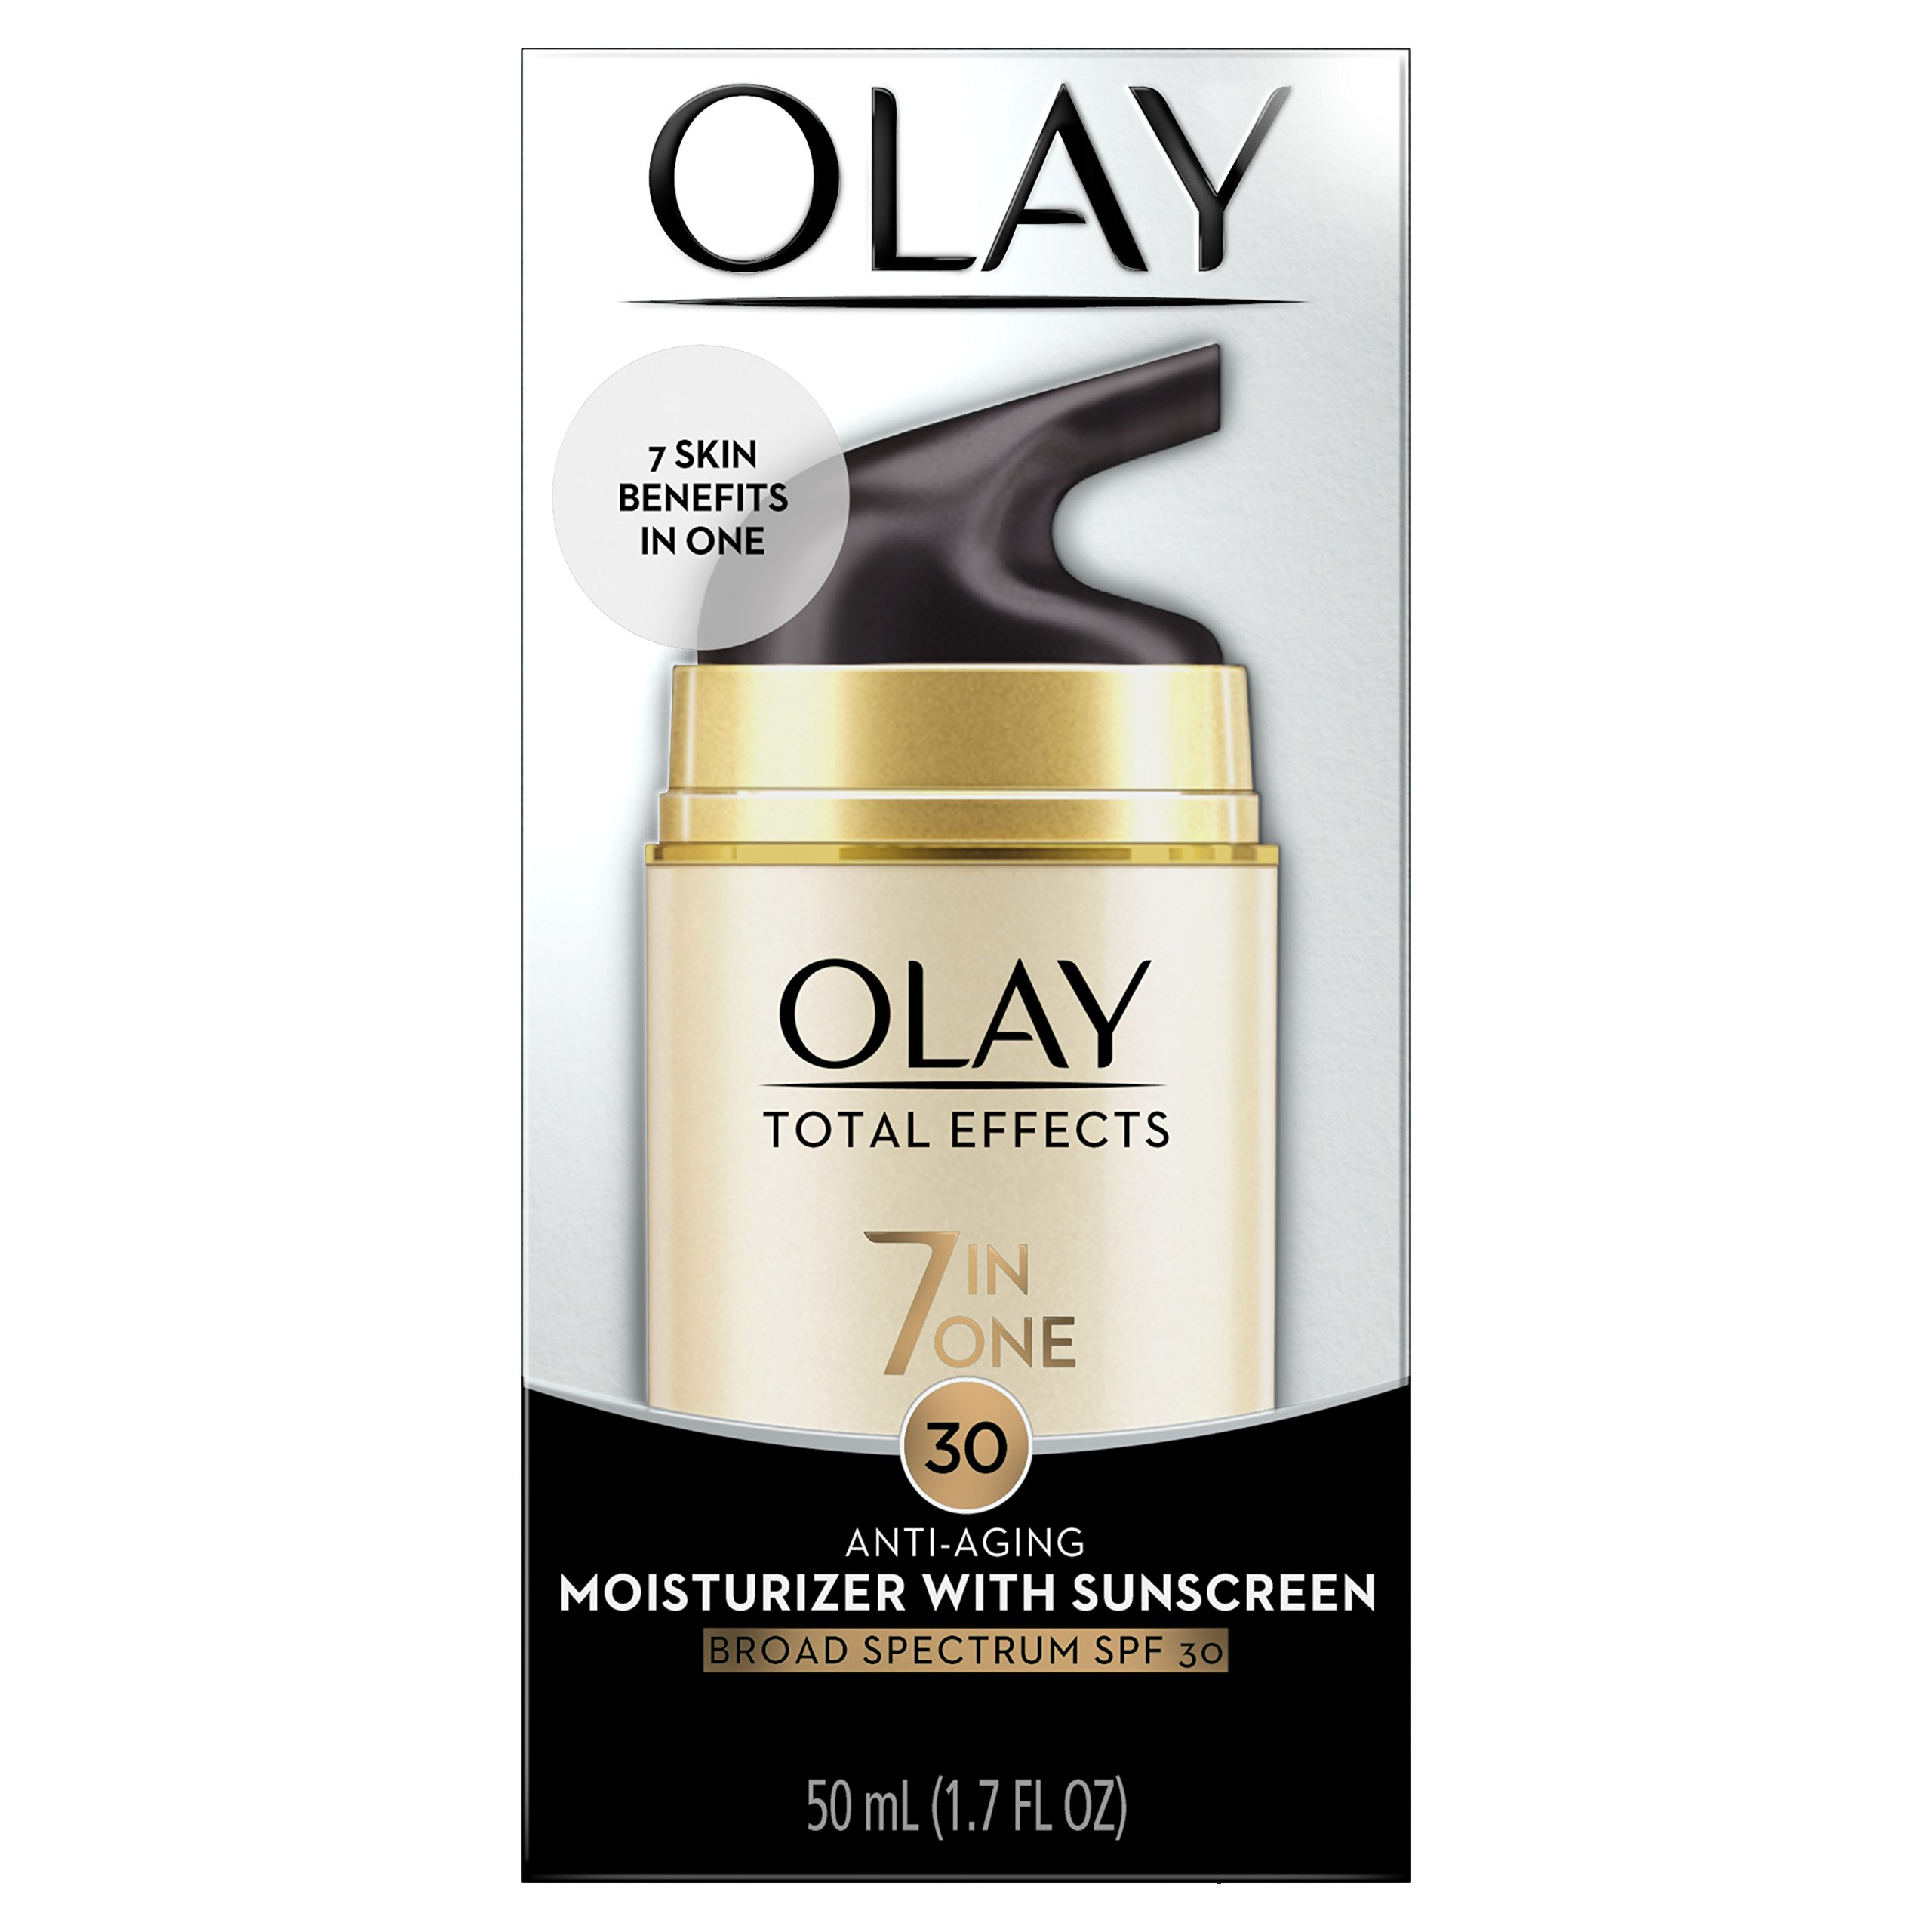 Olay Total Effects 7-in-1 Anti-Aging Daily Face Moisturizer With SPF 30, 1.7 fl oz by Olay (Image #2)